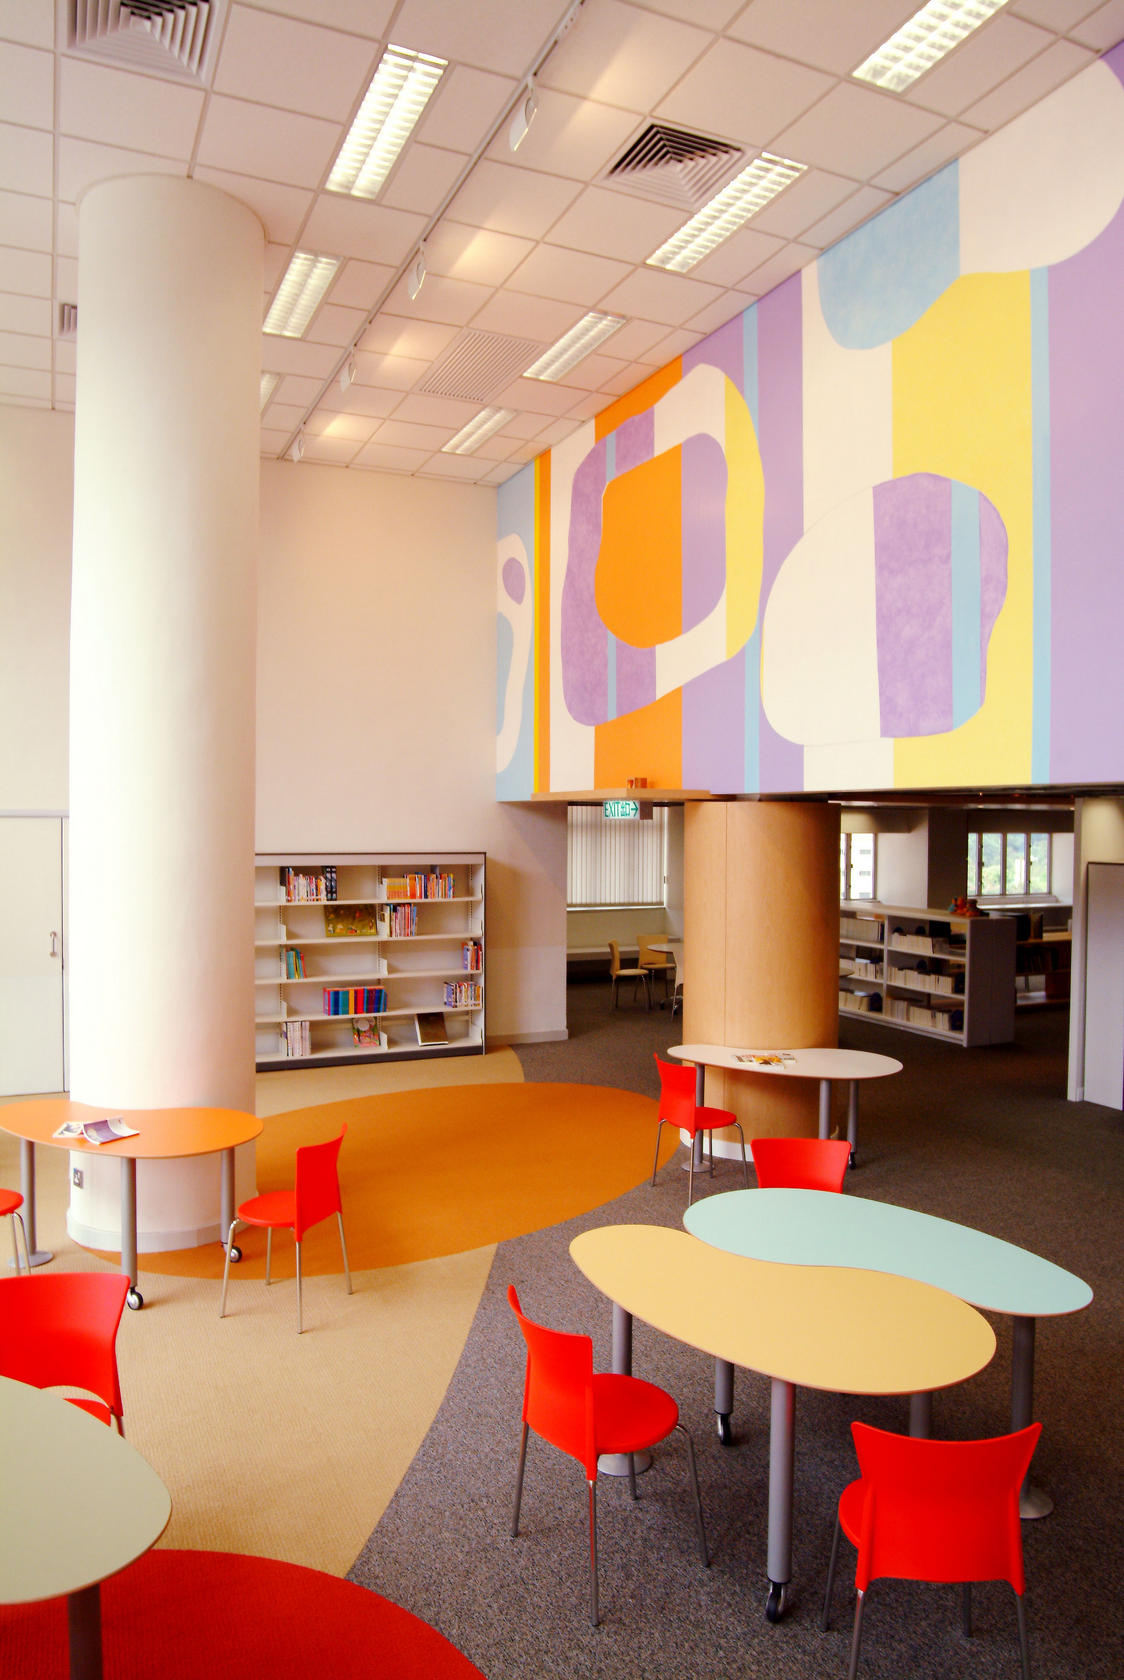 Early learning centres seek to inspire kids through for Learn interior design